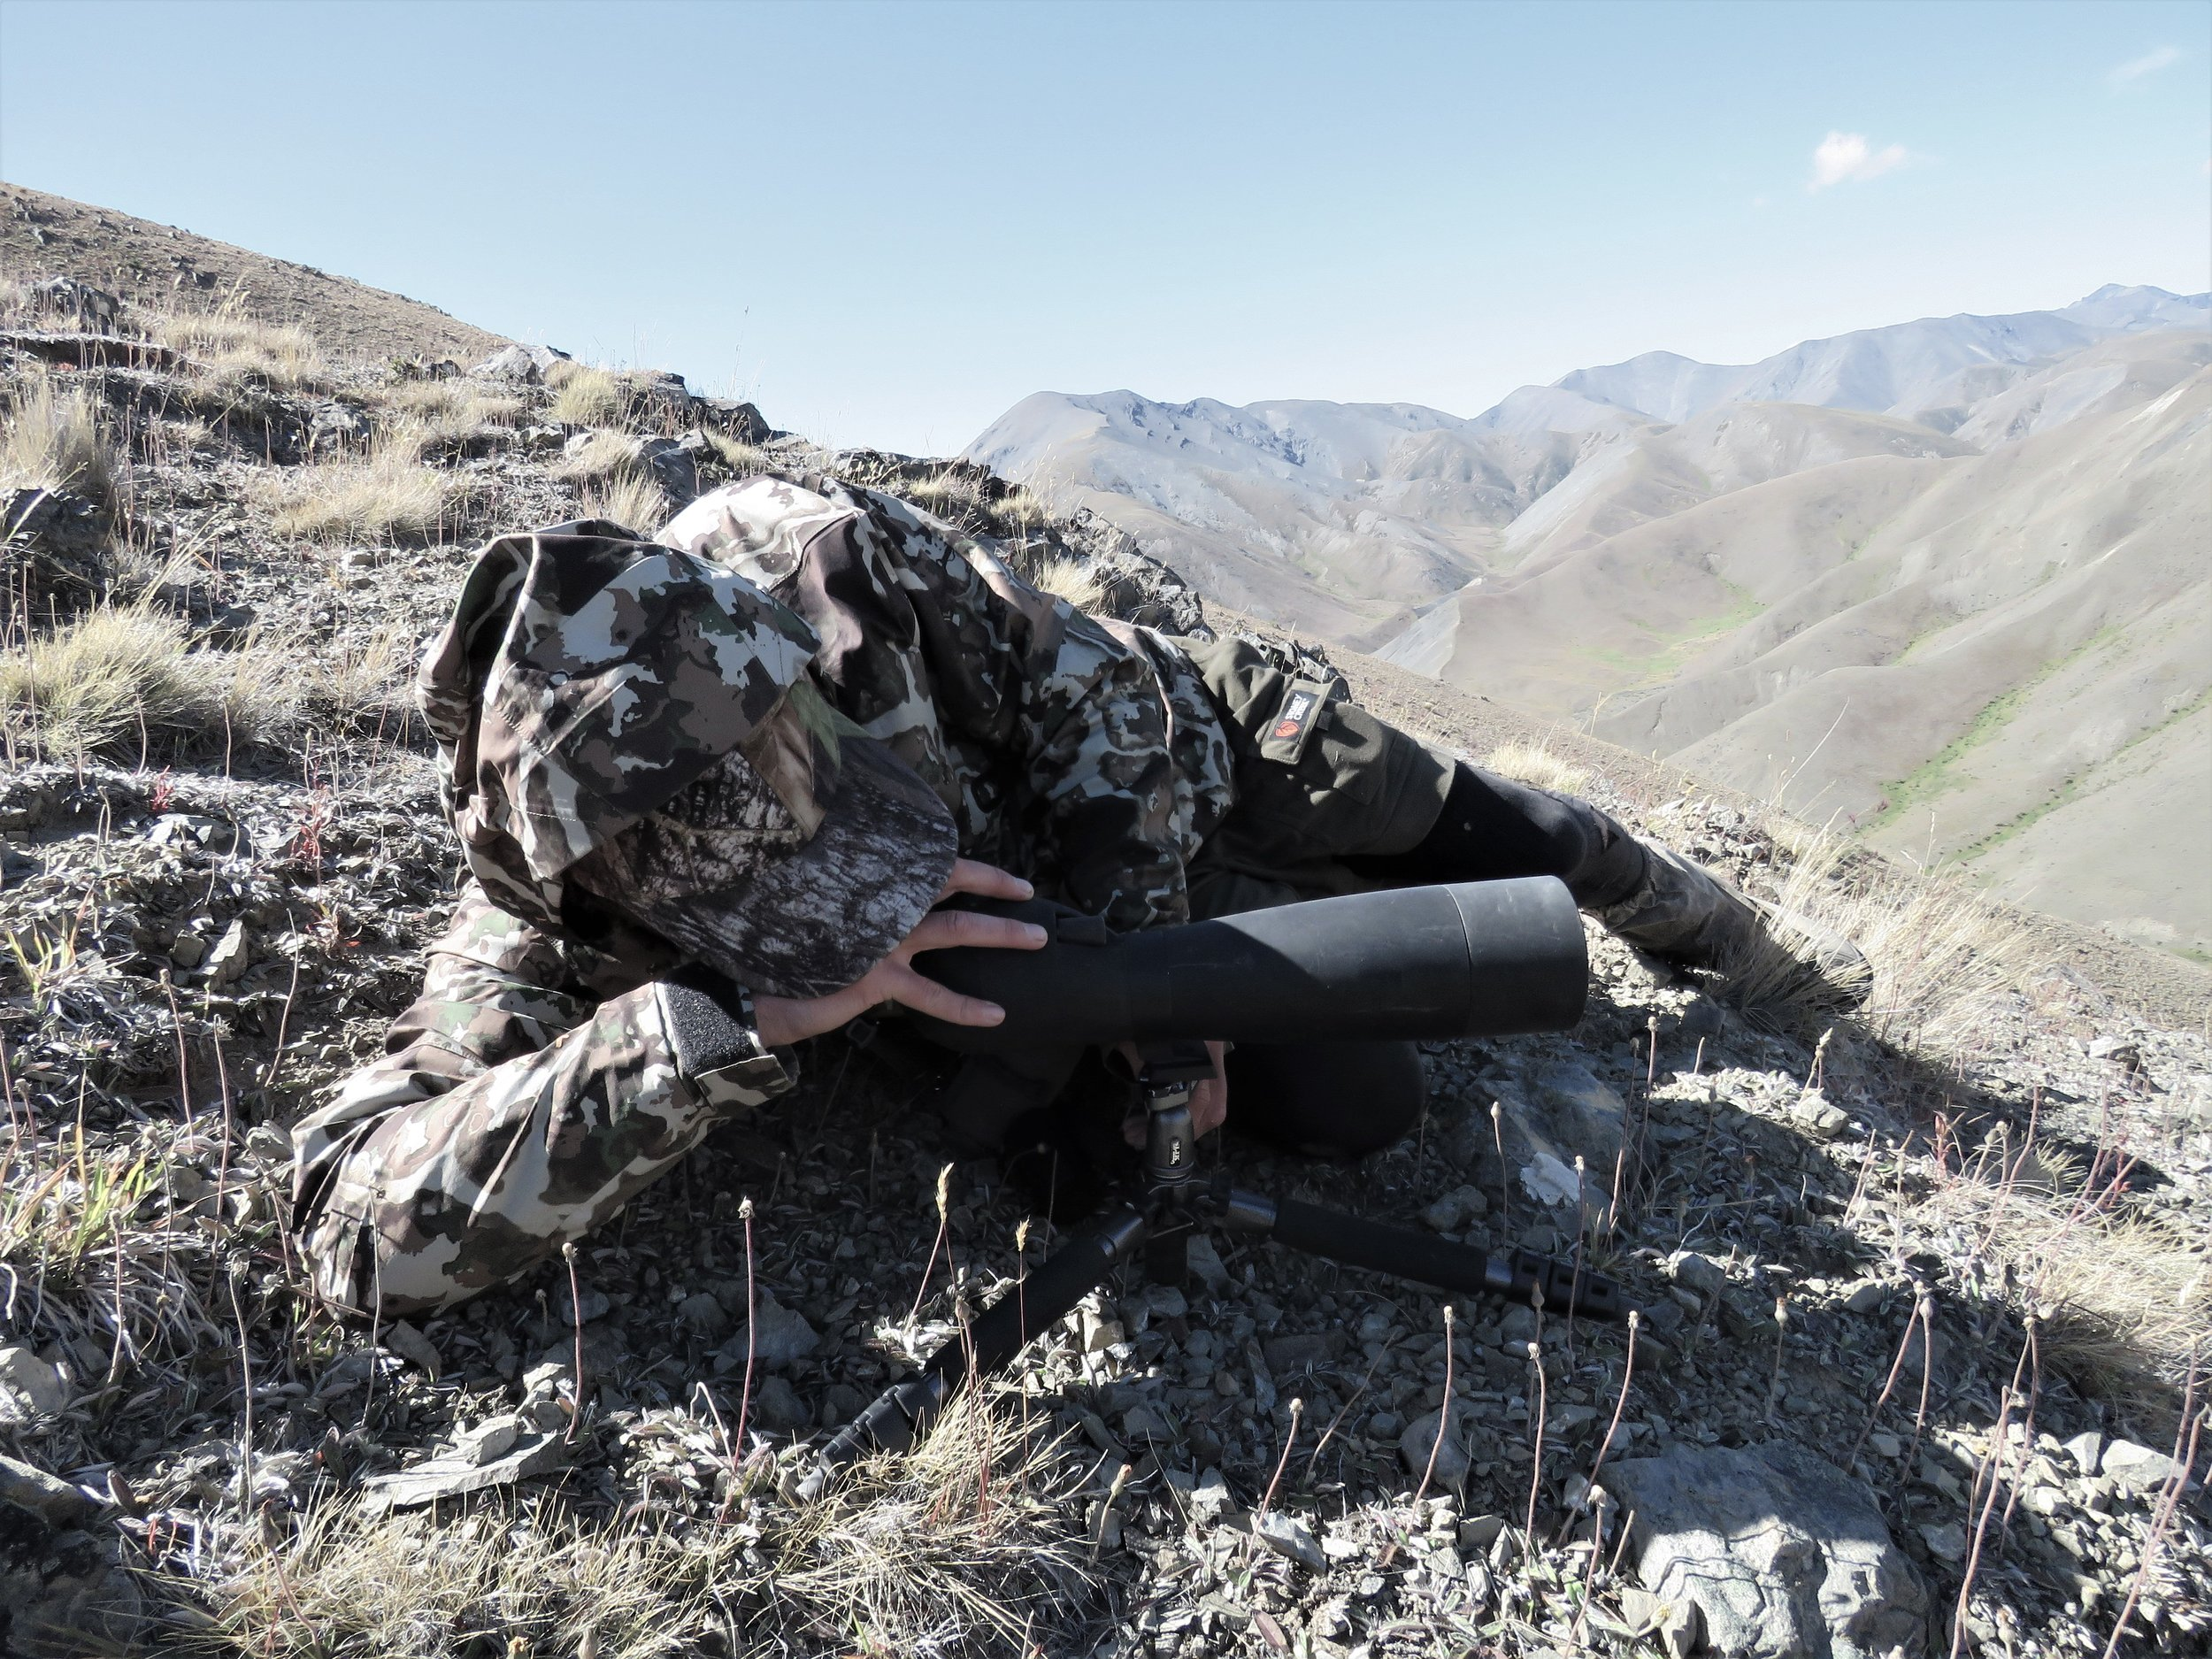 Cam McKay on the spotter, bloody hard to operate in the strong wind, but he has seen something worth a closer inspection! The First lite Fusion Camo is pretty neat too.